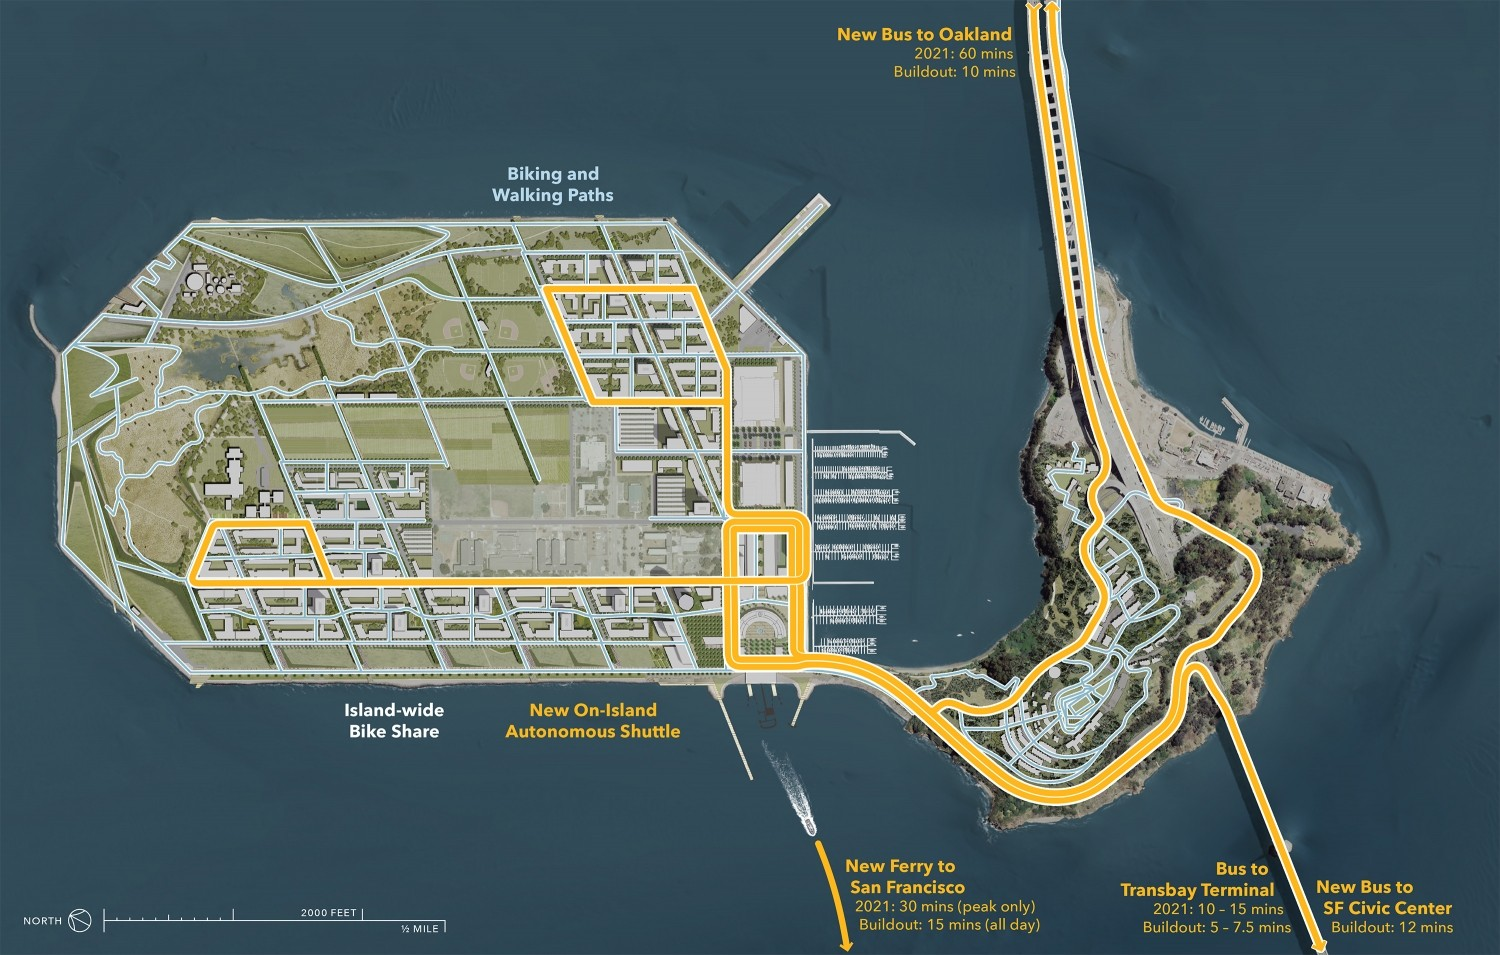 A map of the transit benefits coming to Treasure Island, including a new ferry, increased Muni service, and AC Transit service to Oakland